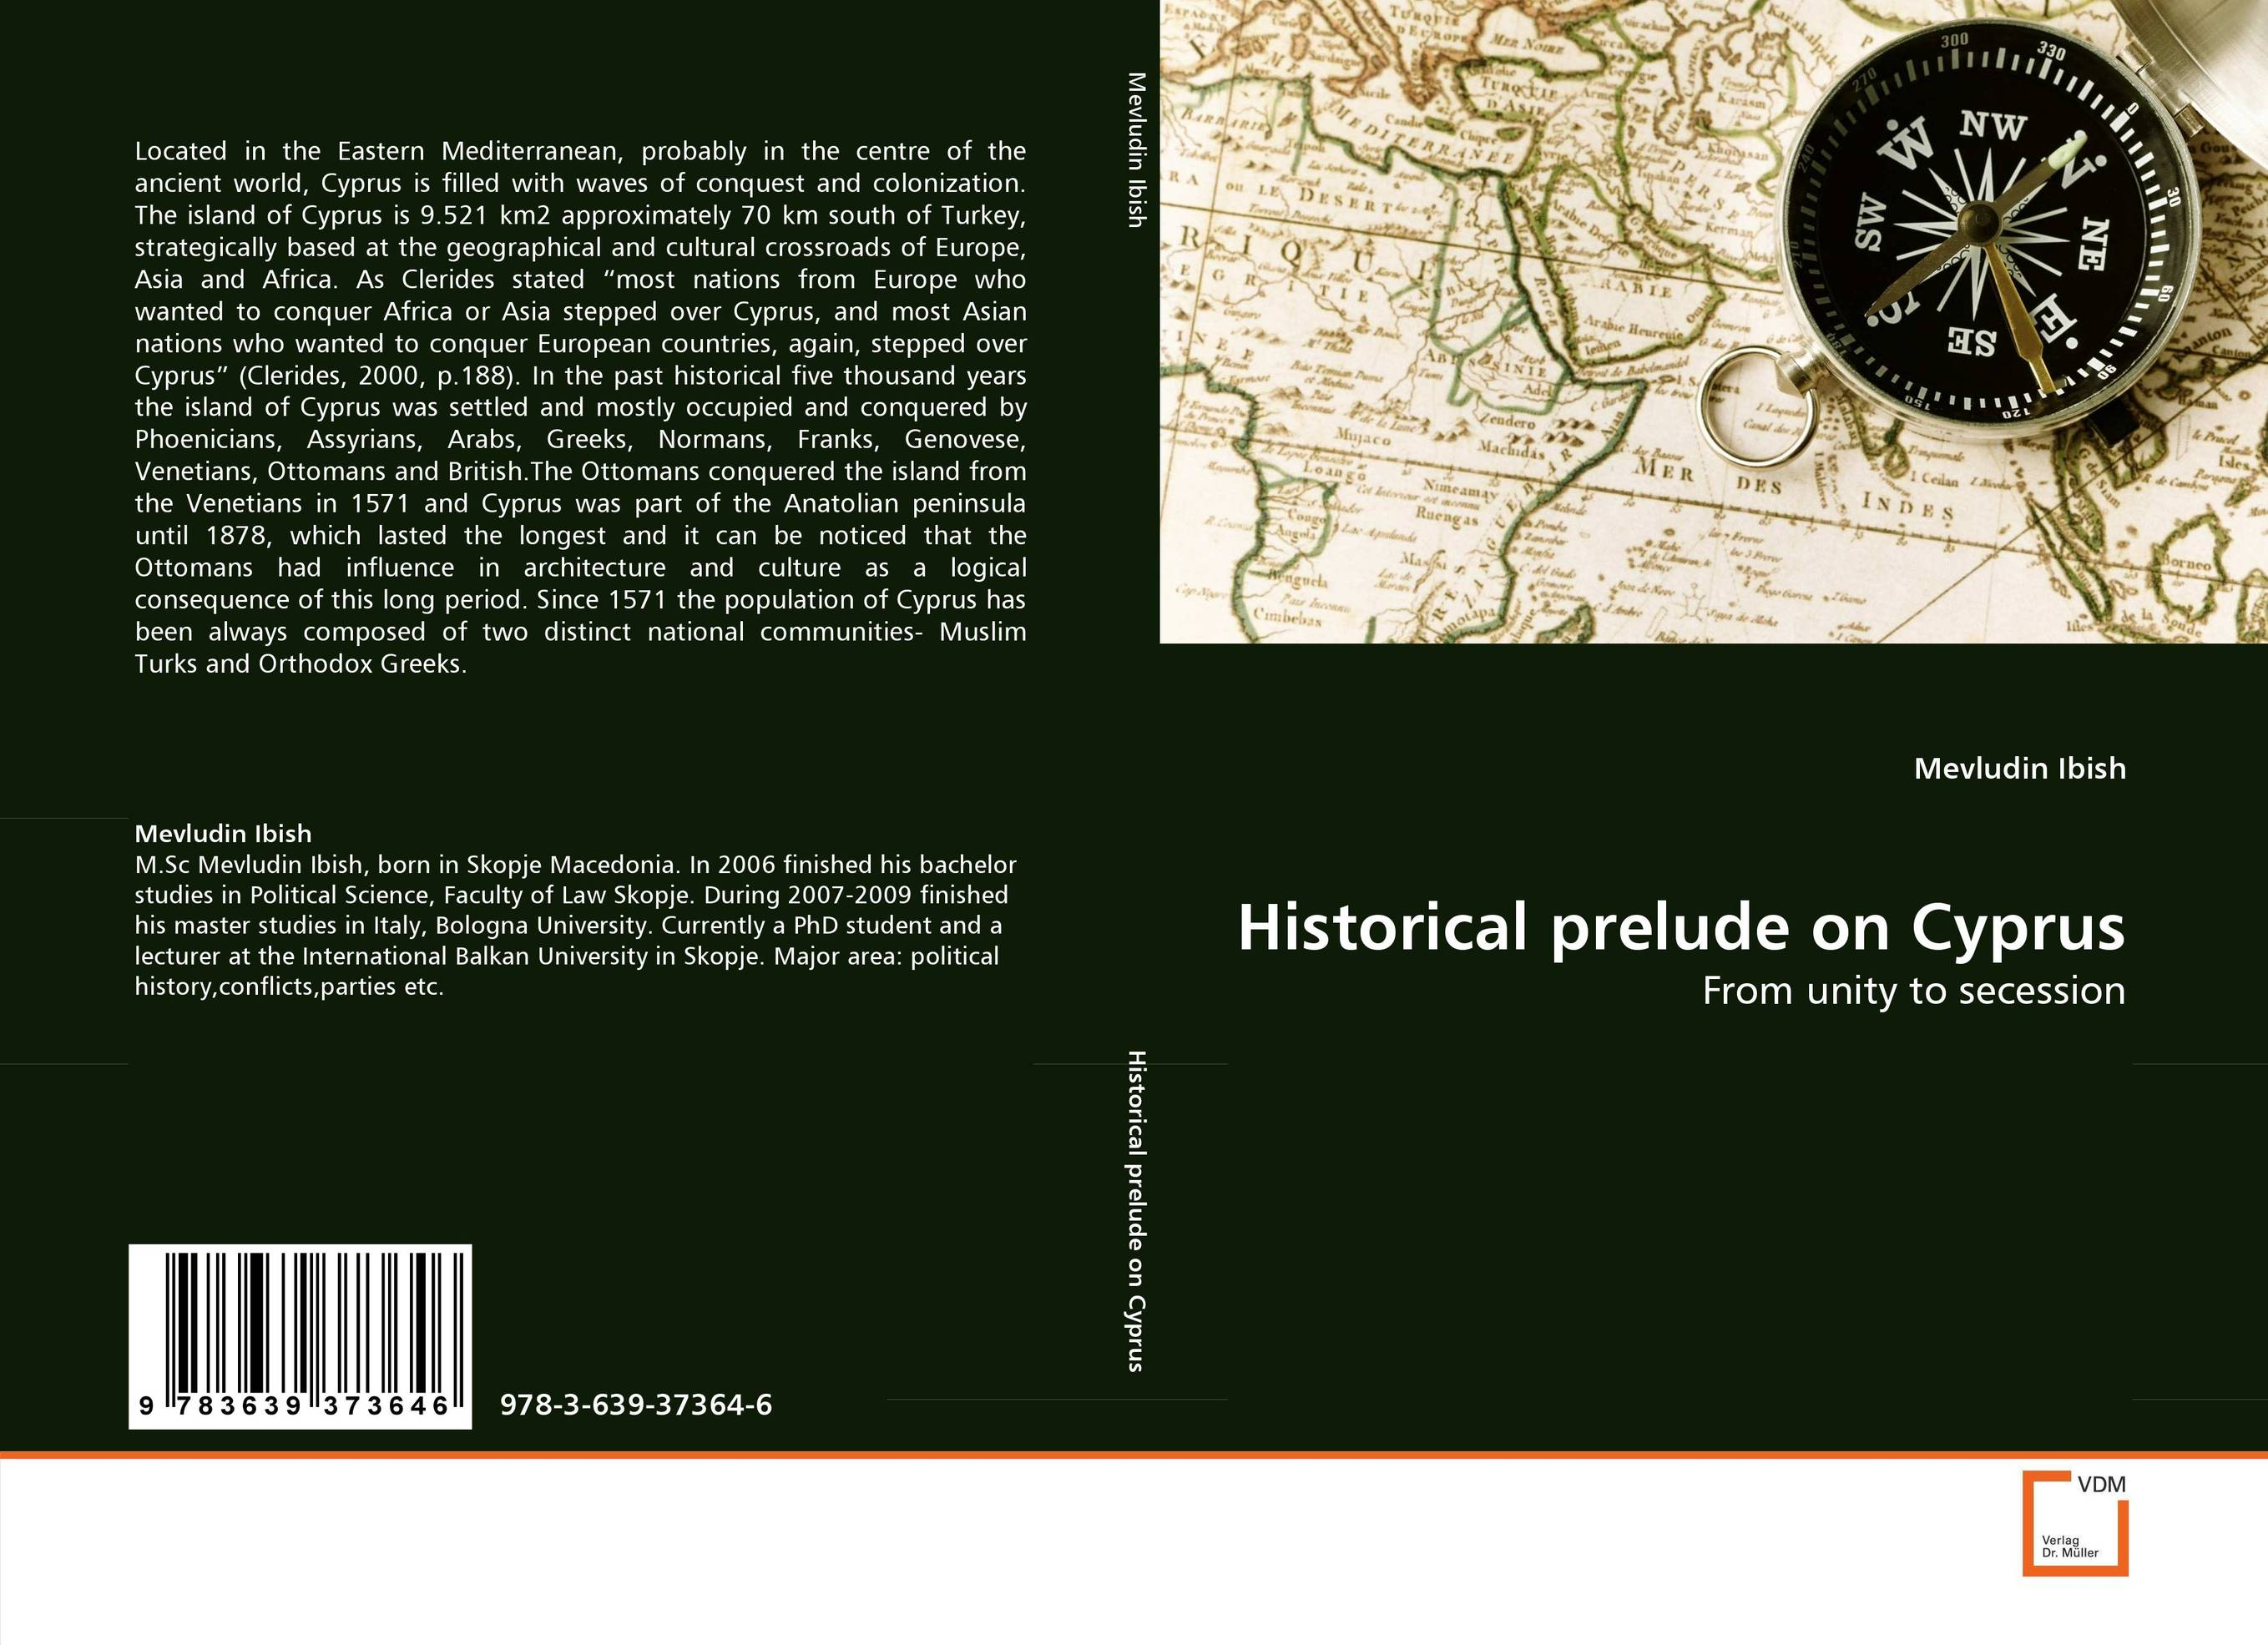 Historical prelude on Cyprus